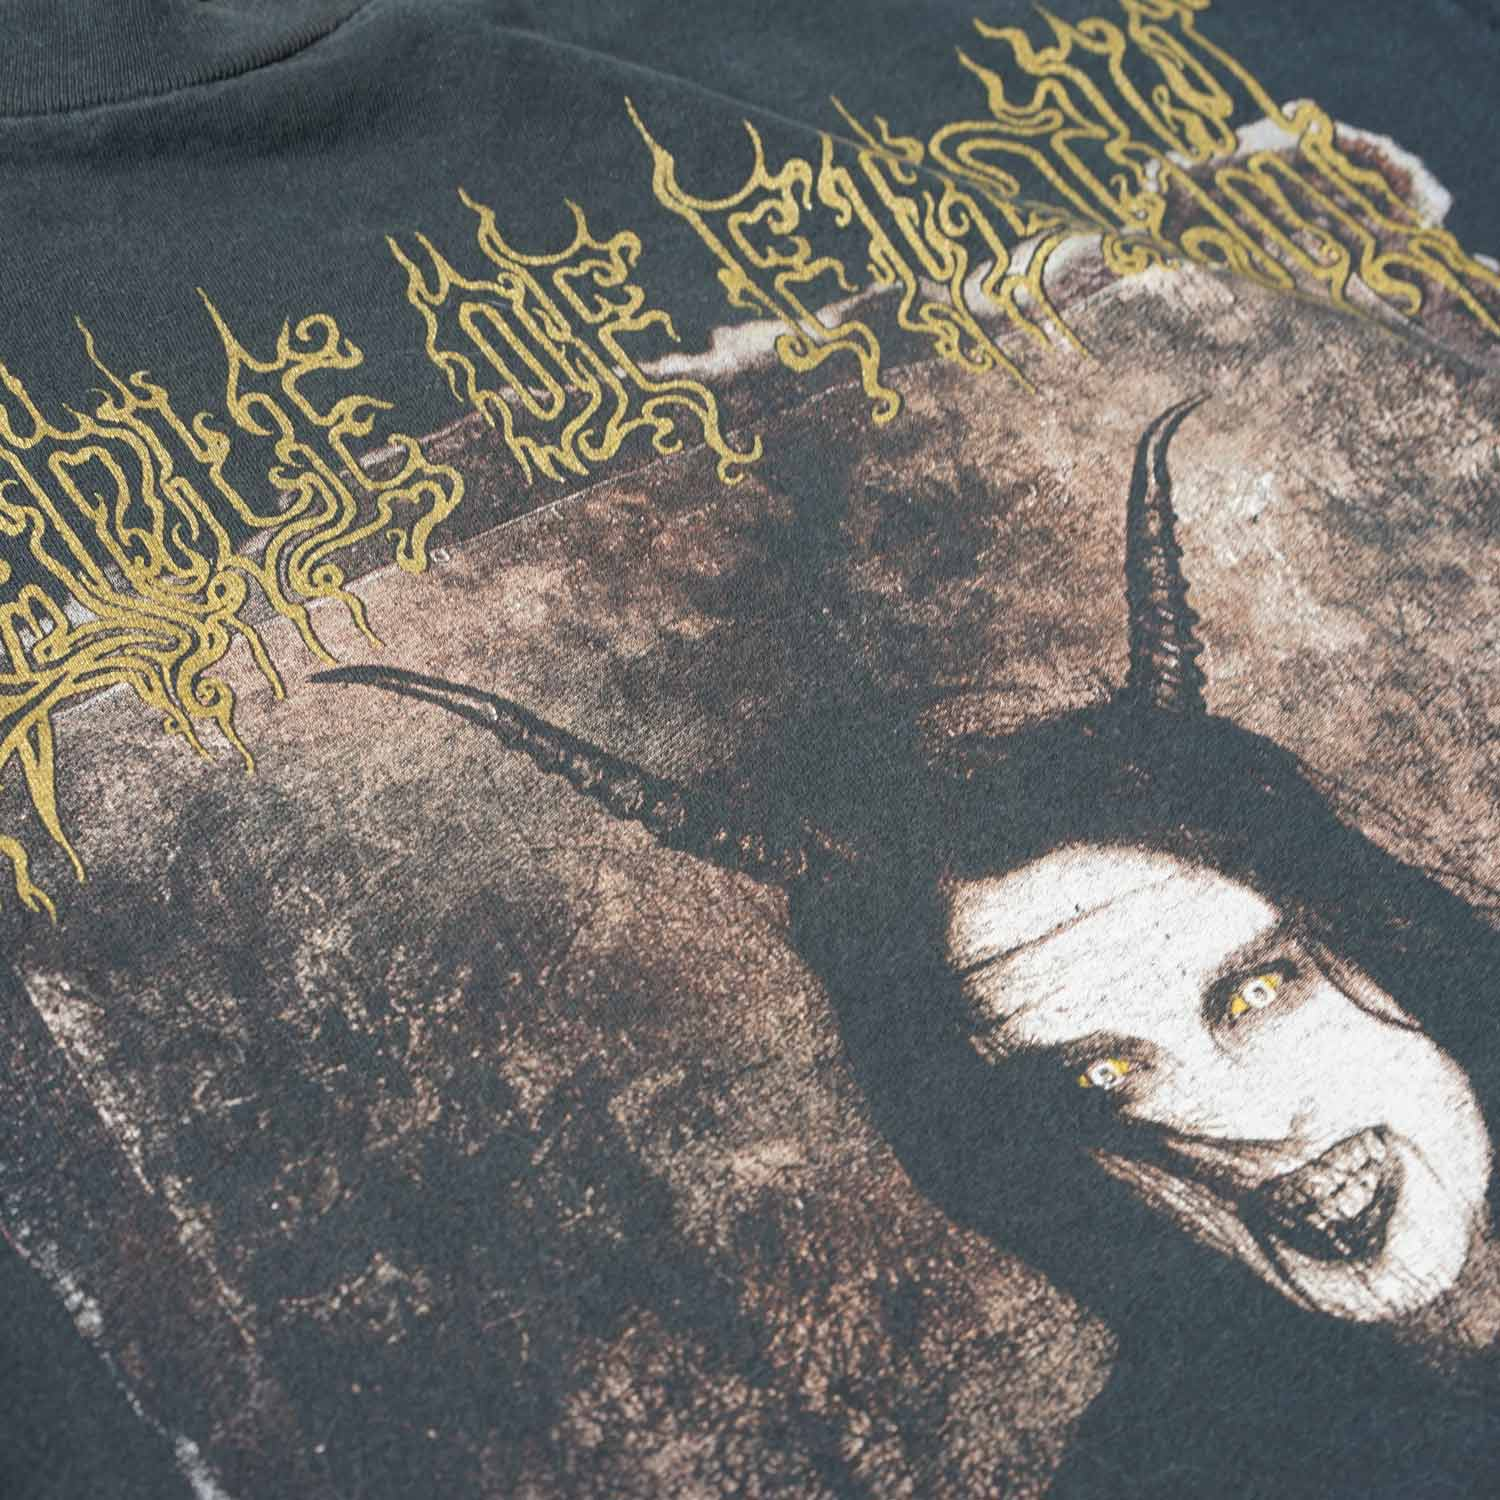 Cradle of Filth - Wall-Eyed, Vain, and Insane